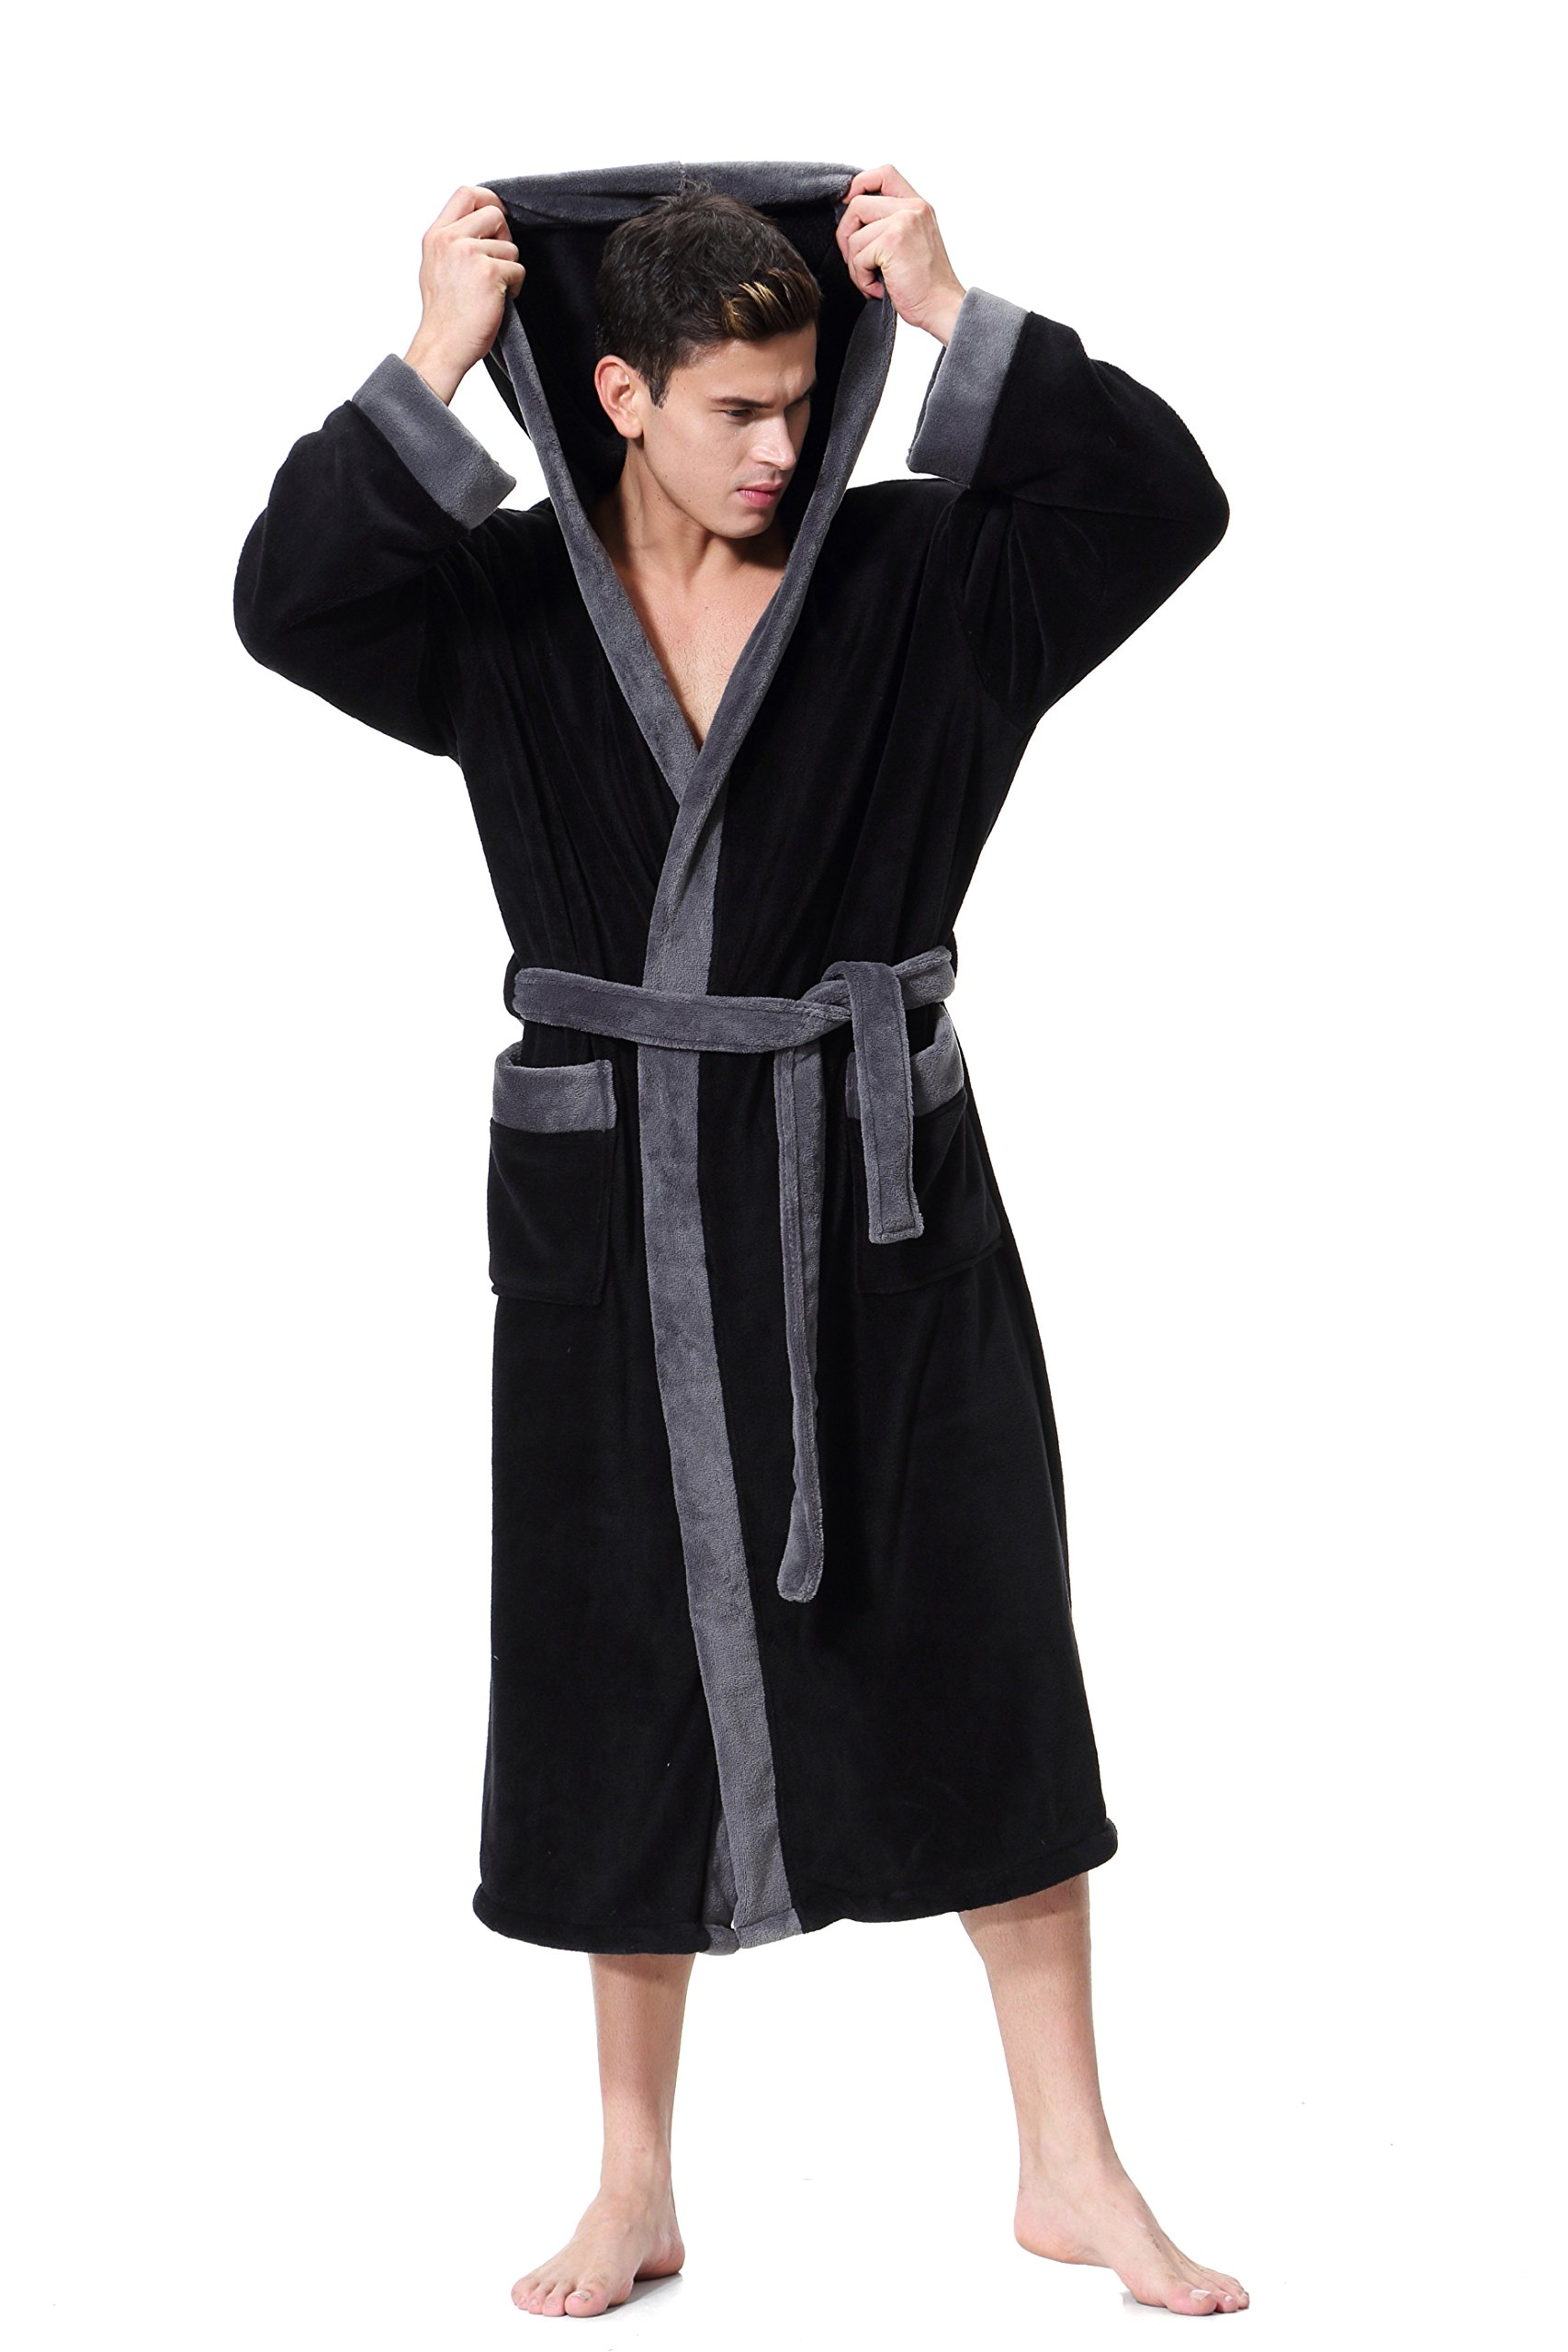 OUFANG Black Bathrobe Soft spa Kimono Shawl Collar Hooded Long Robe Unisex (Medium)